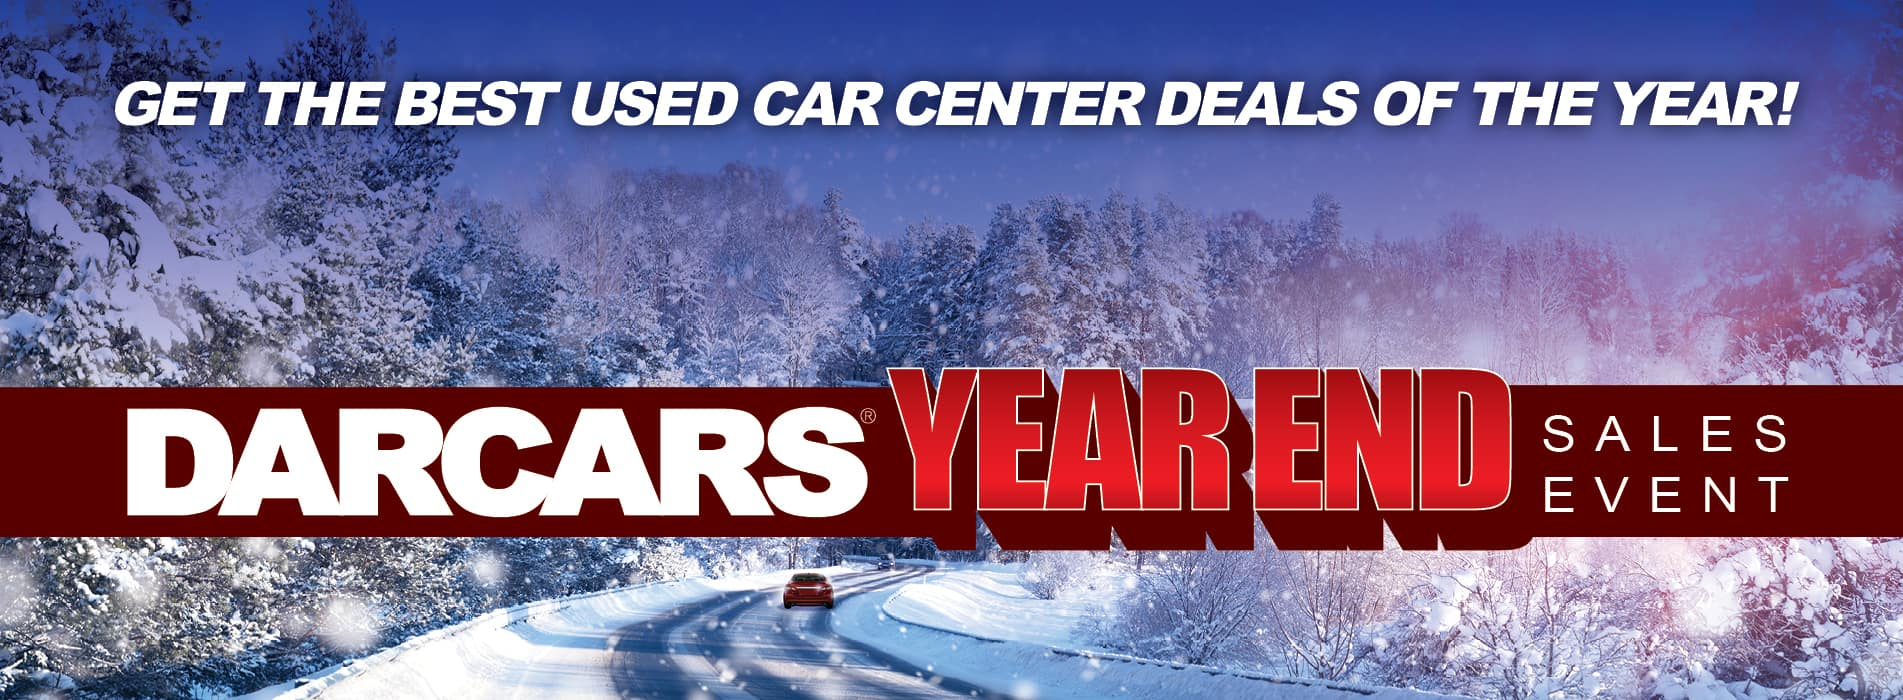 Get the best used car center deals of the year - DARCARS year end sales event banner with red car driving through snow covered forest in the background